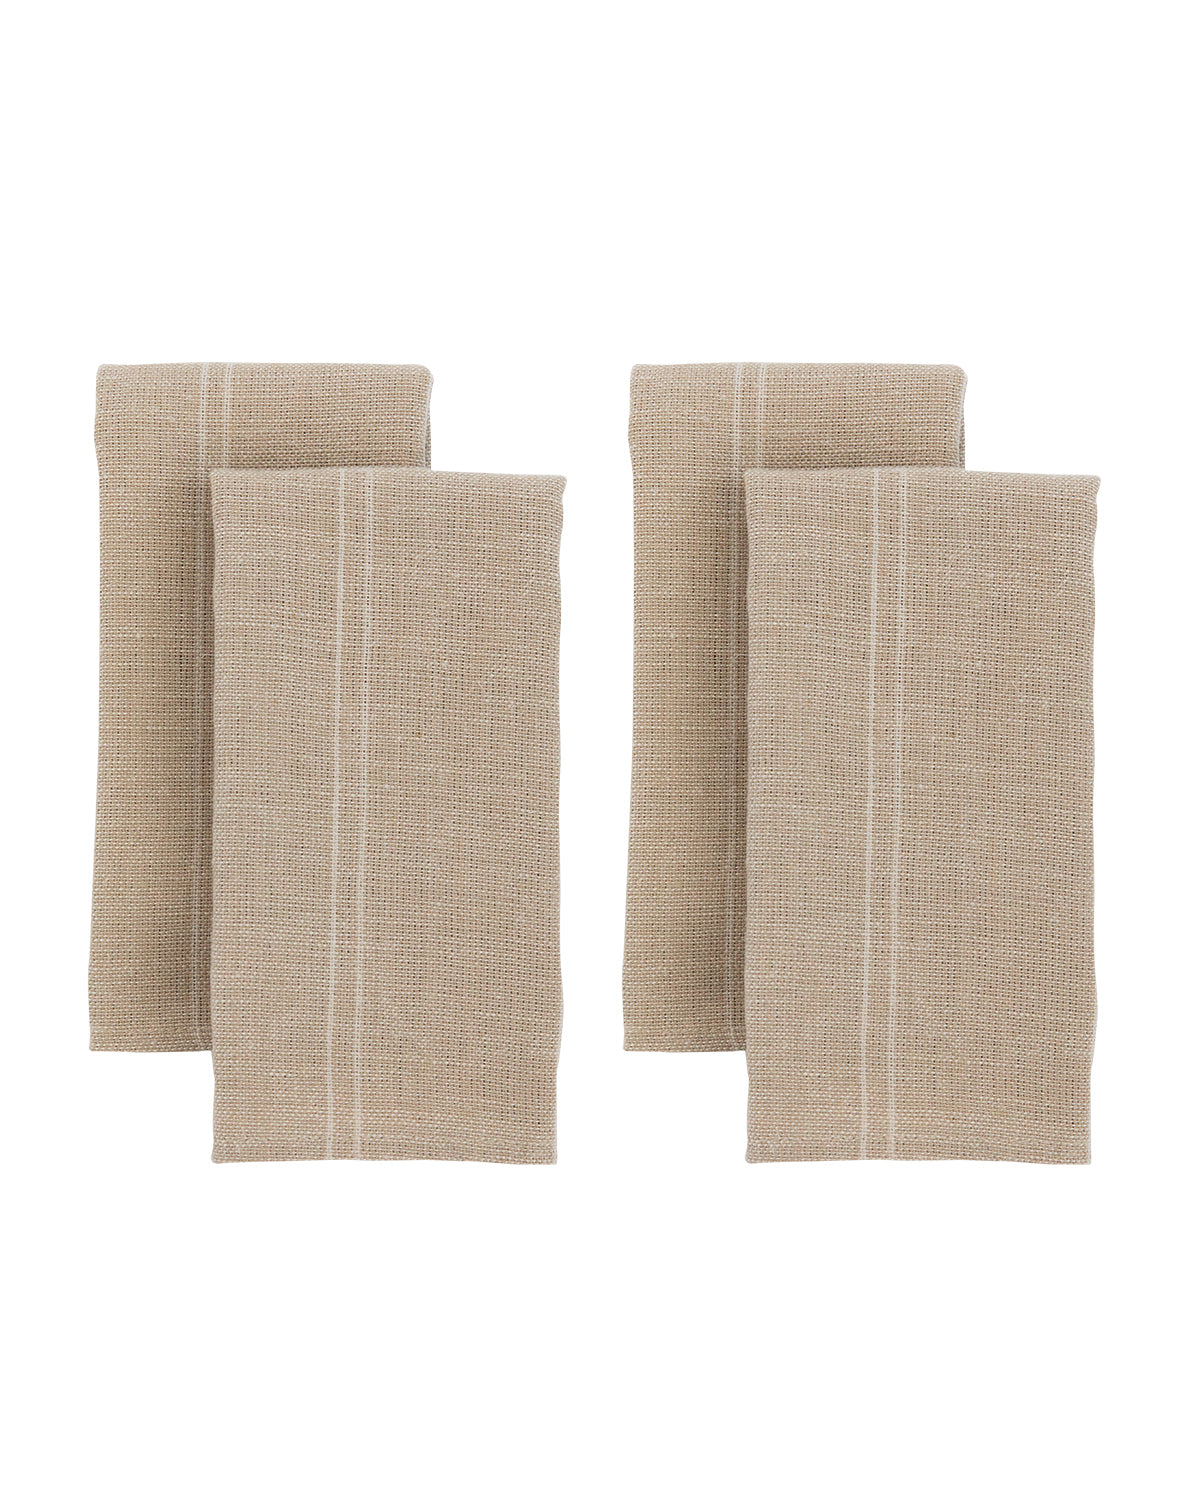 Wheat Linen Table Napkin (Set of 4)